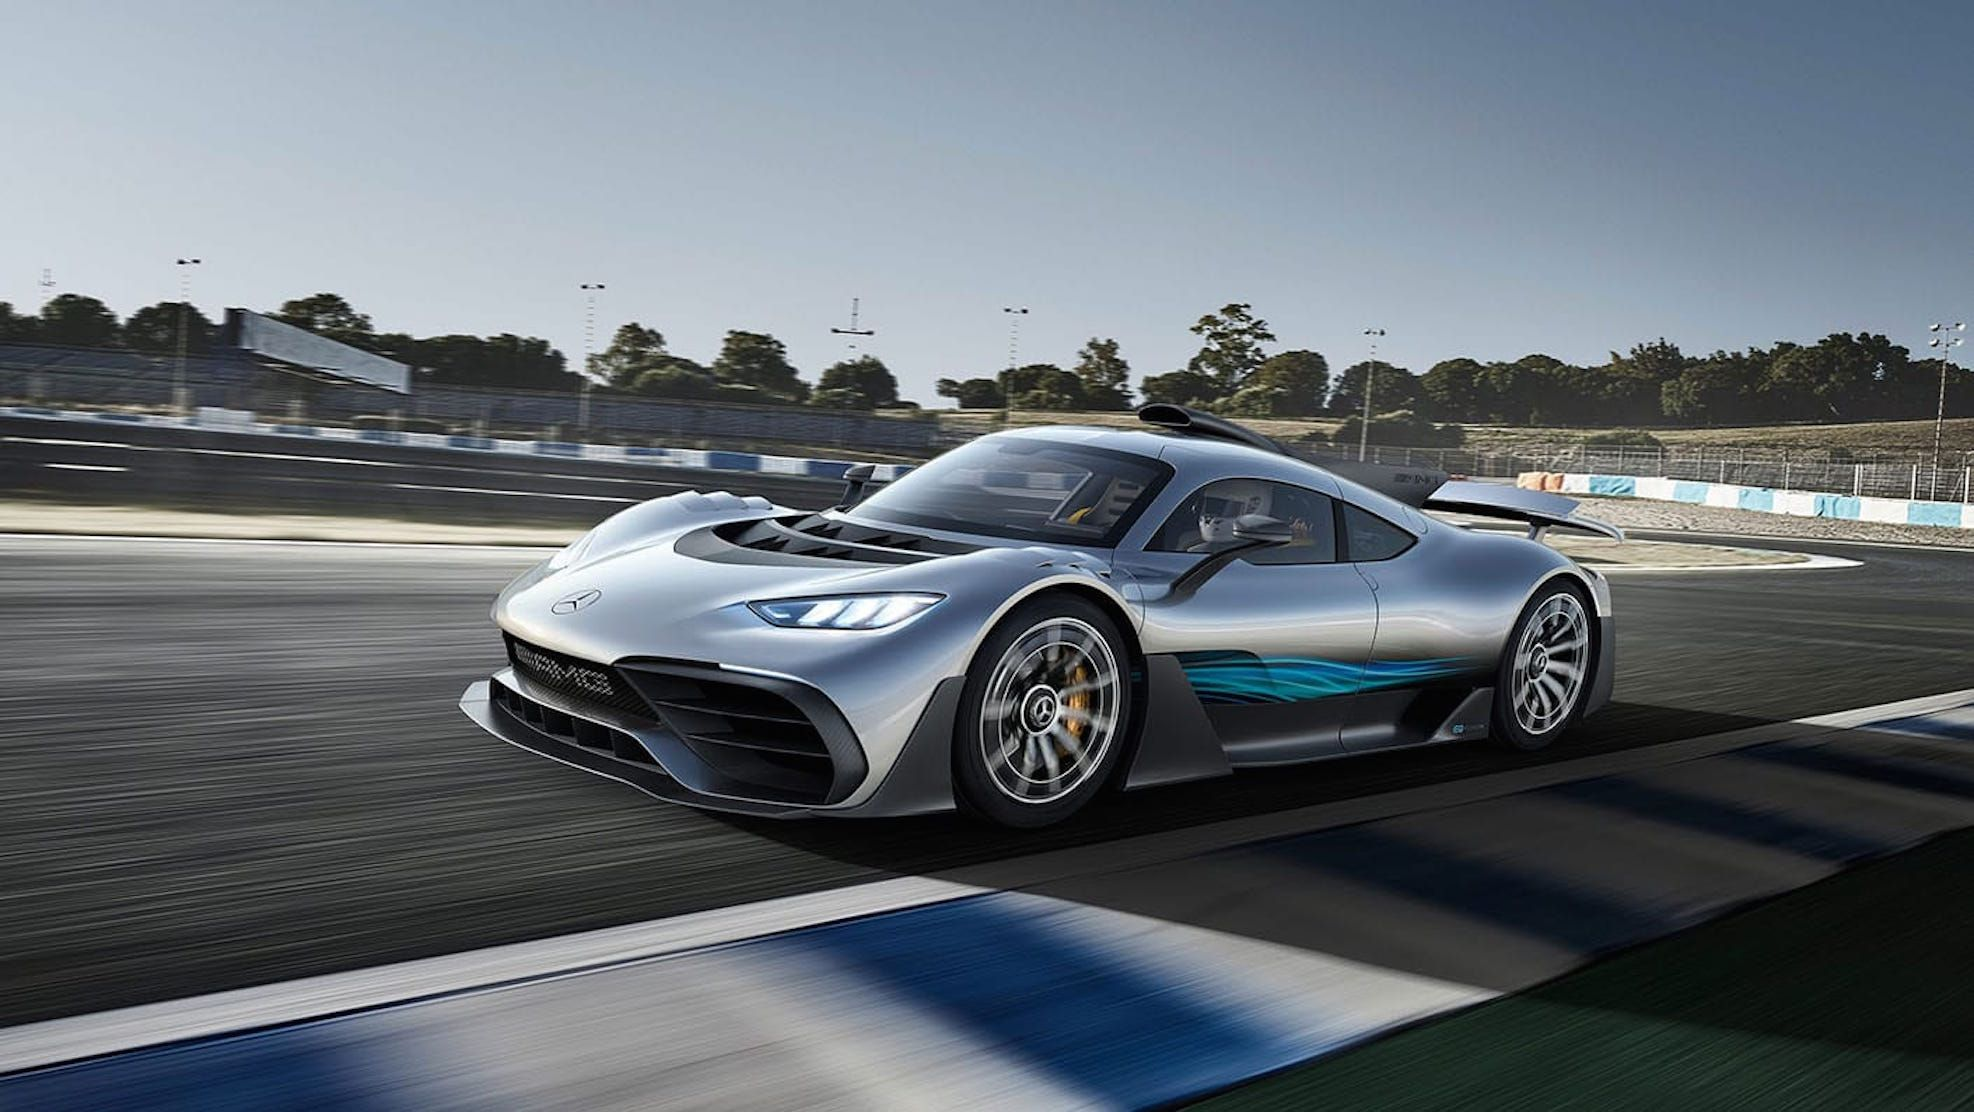 Mercedes AMG Project One at Race Track